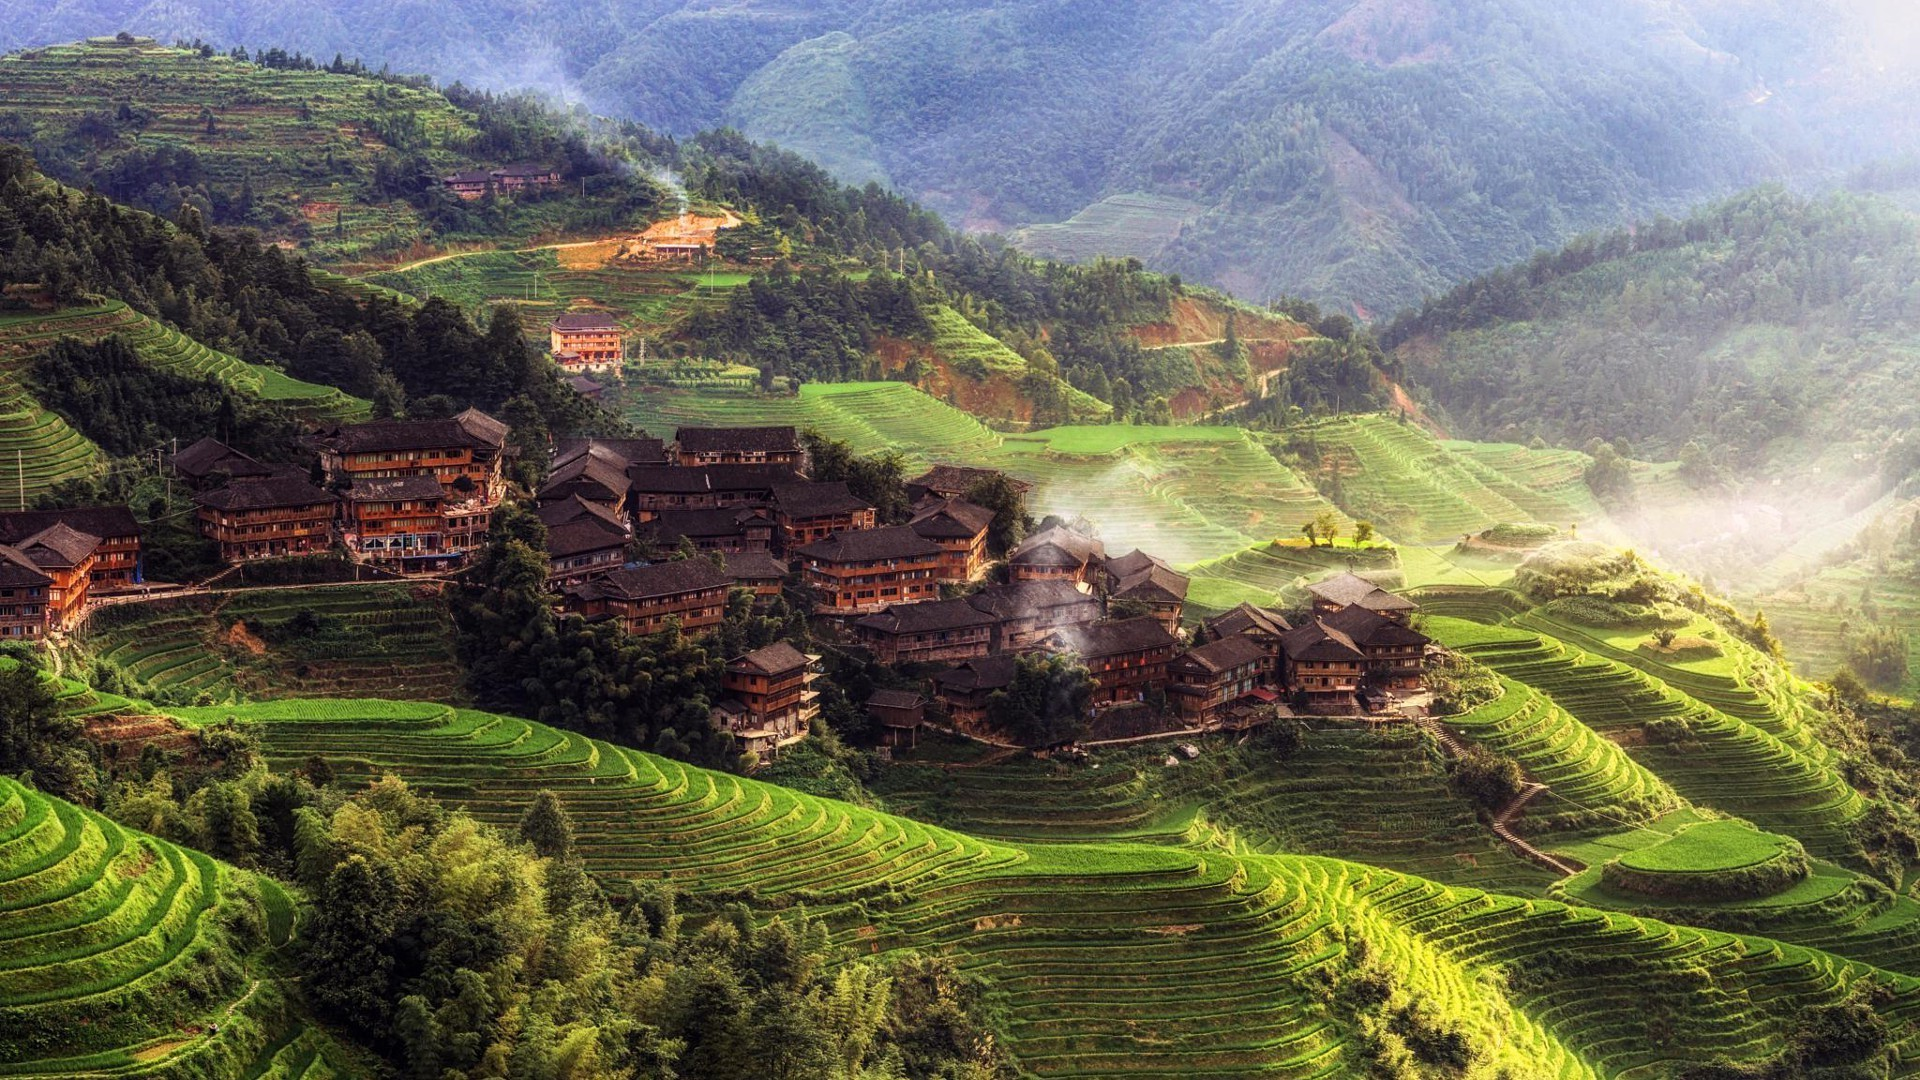 2873613-nature-landscape-trees-china-asia-rice-paddy-morning-mist-house-hill-forest-terraced-field-village___landscape-nature-wallpapers